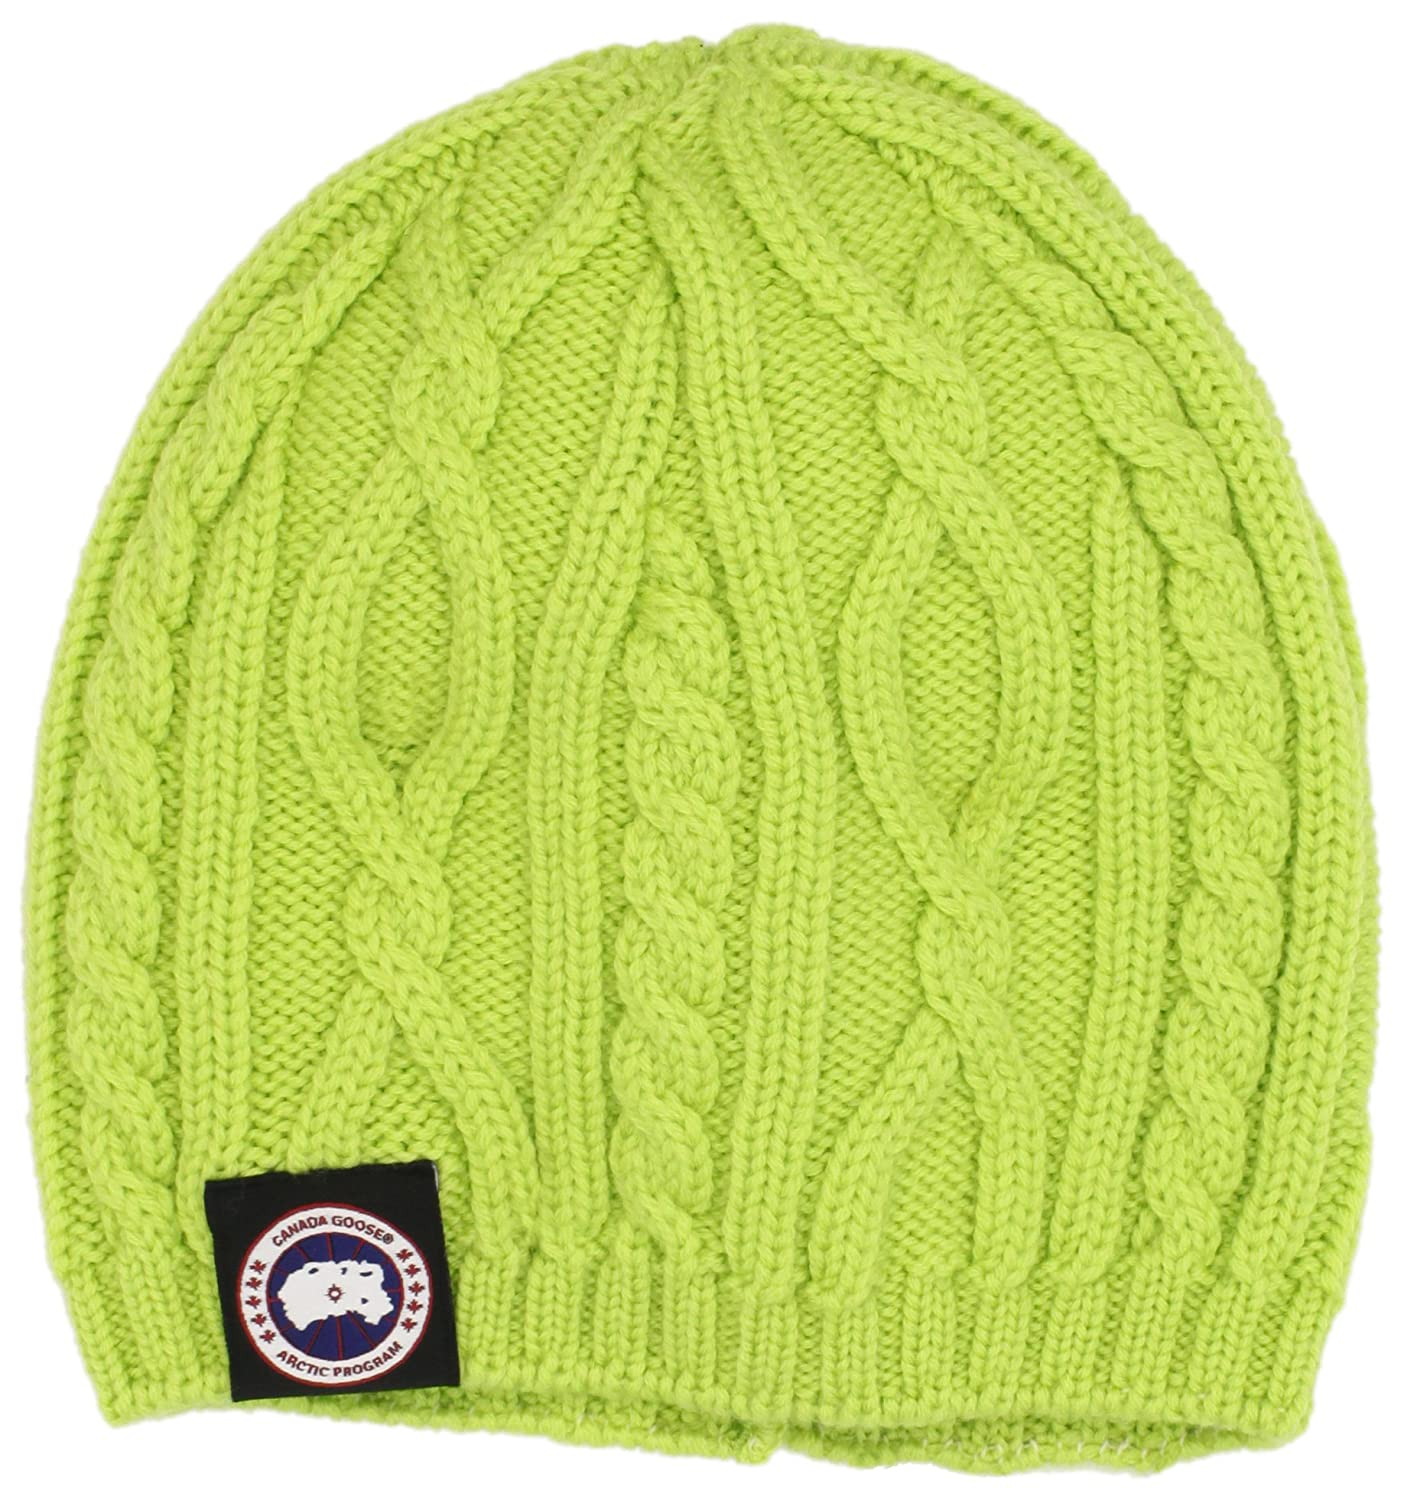 de265786ca6 Amazon.com  Canada Goose Women s Merino Cable Beanie (One Size ...